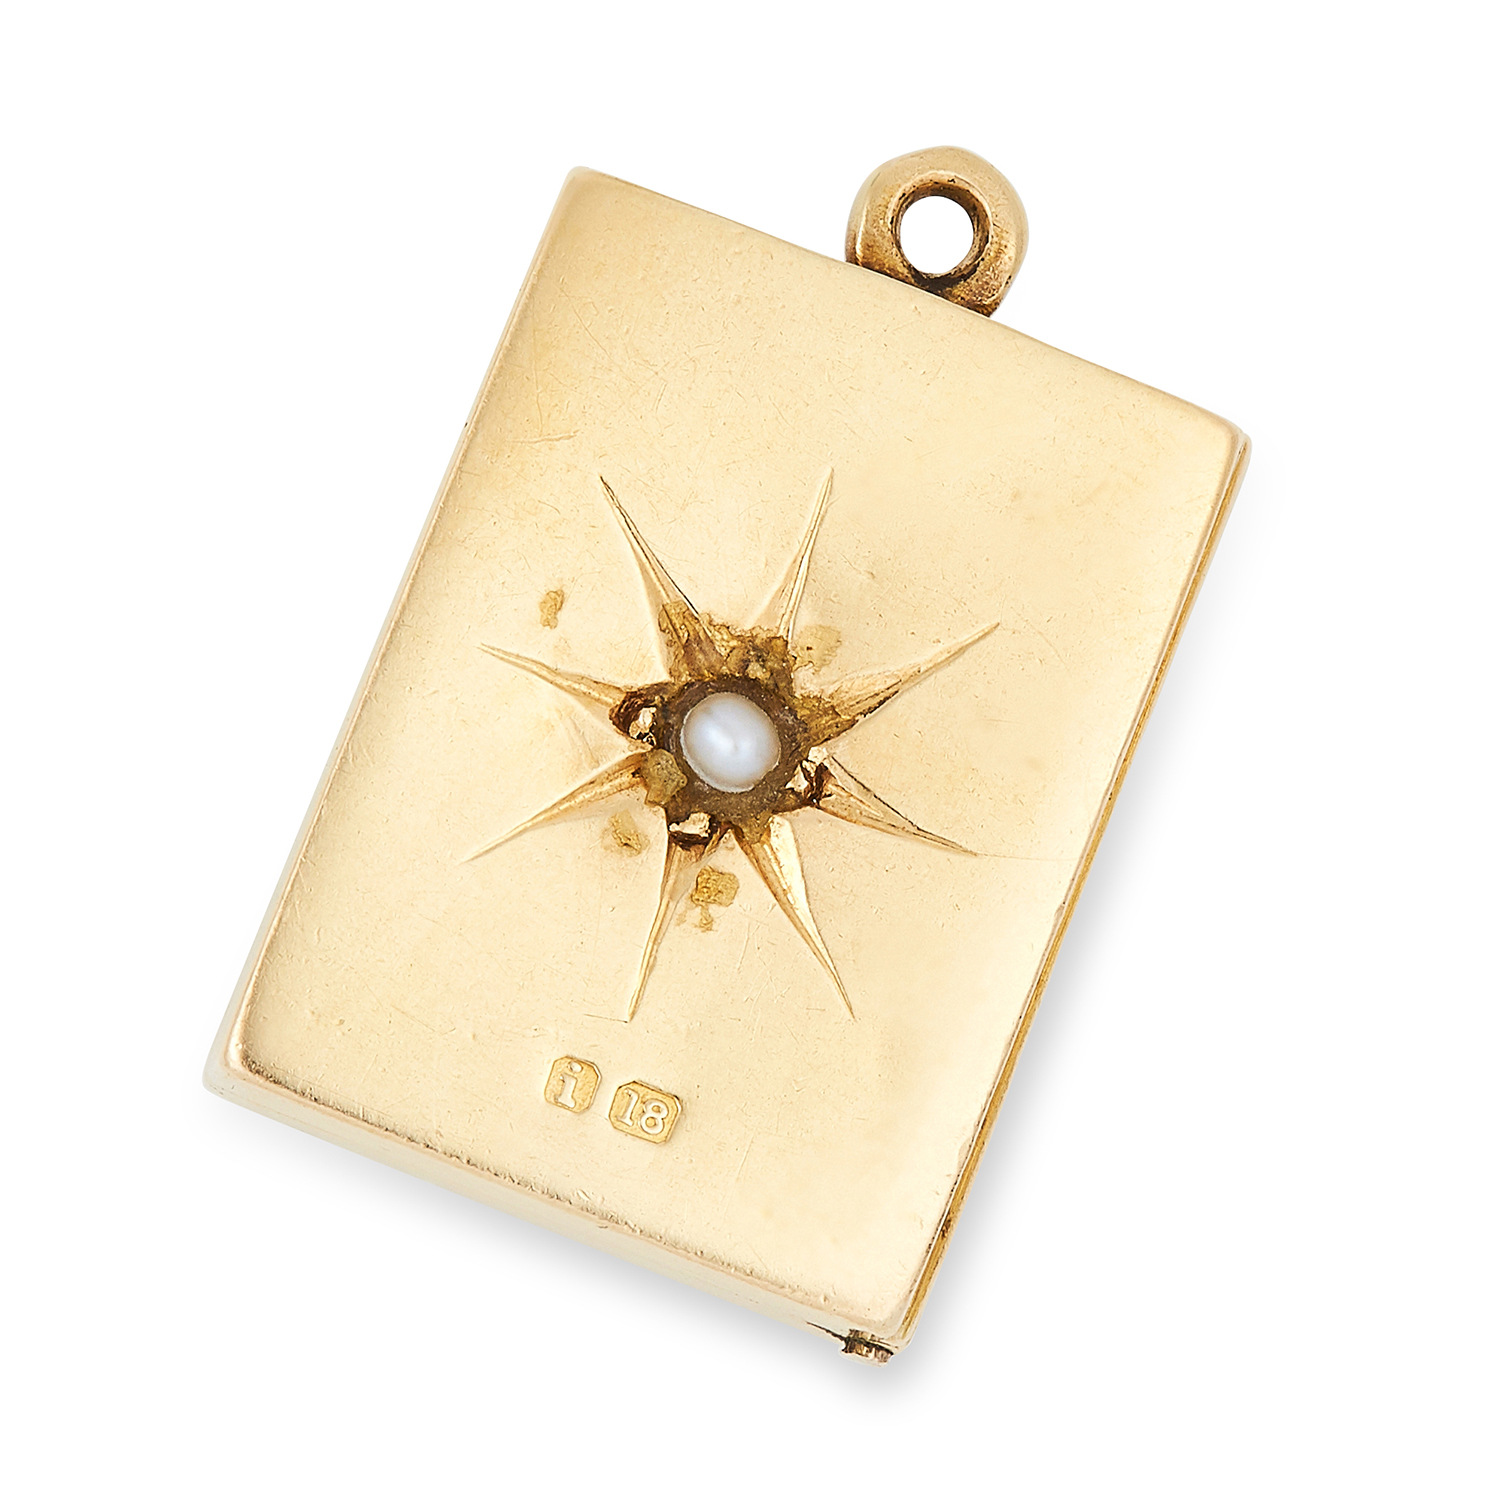 Los 20 - ANTIQUE SEED PEARL BOOK CHARM / PENDANT designed as an opening book, set with a seed pearl in star